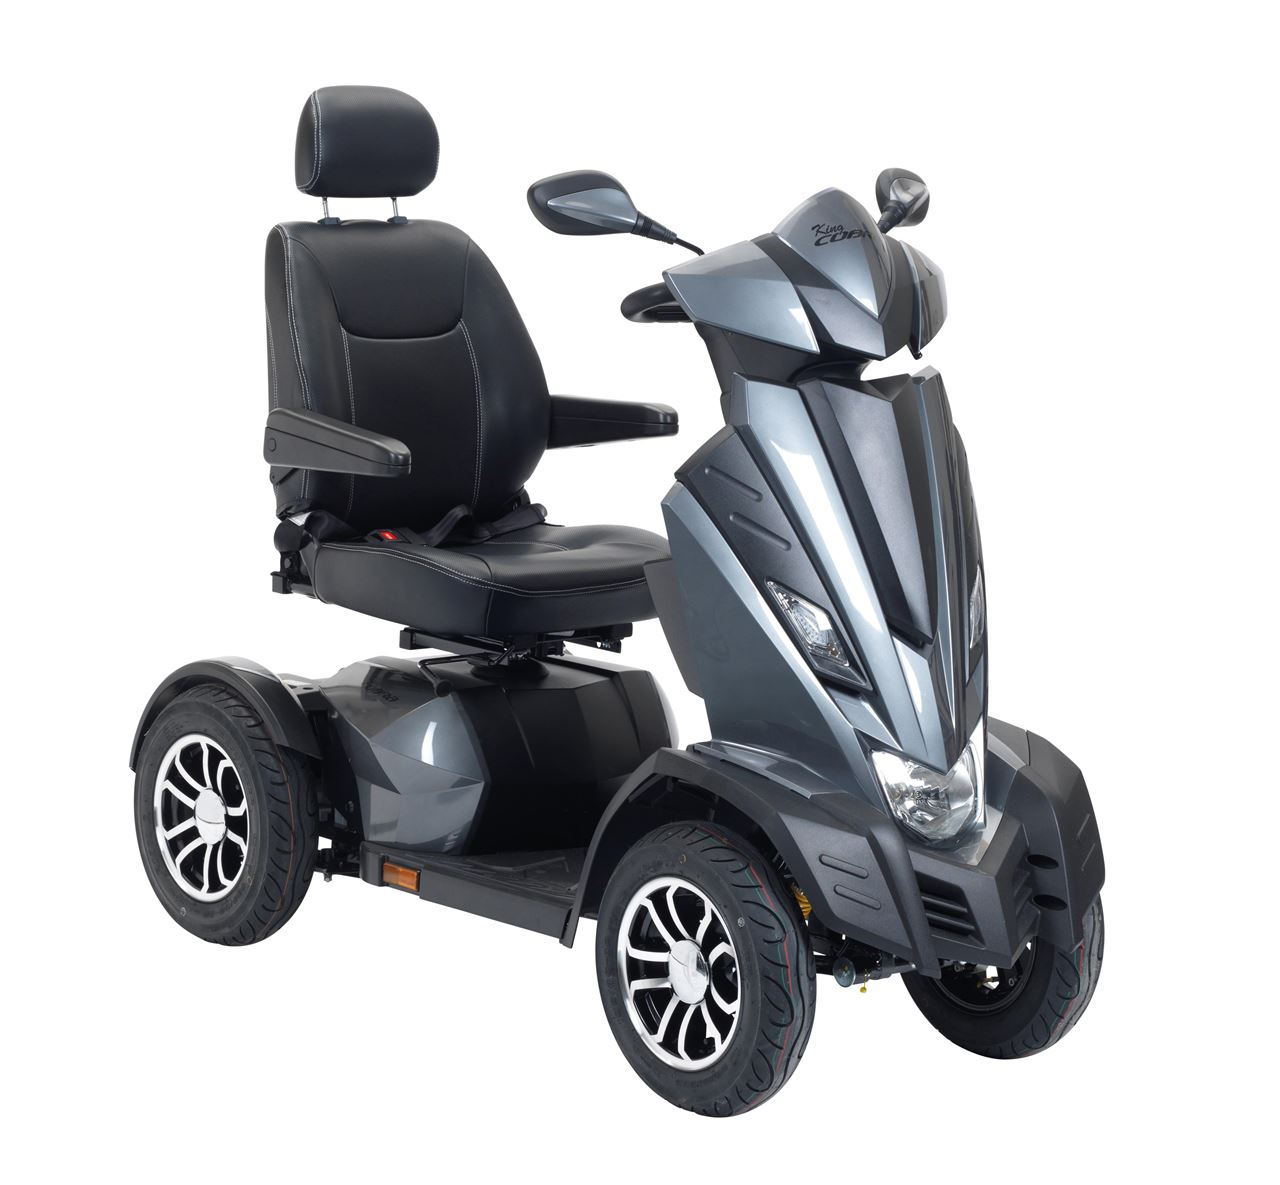 Picture for category King Cobra Scooter